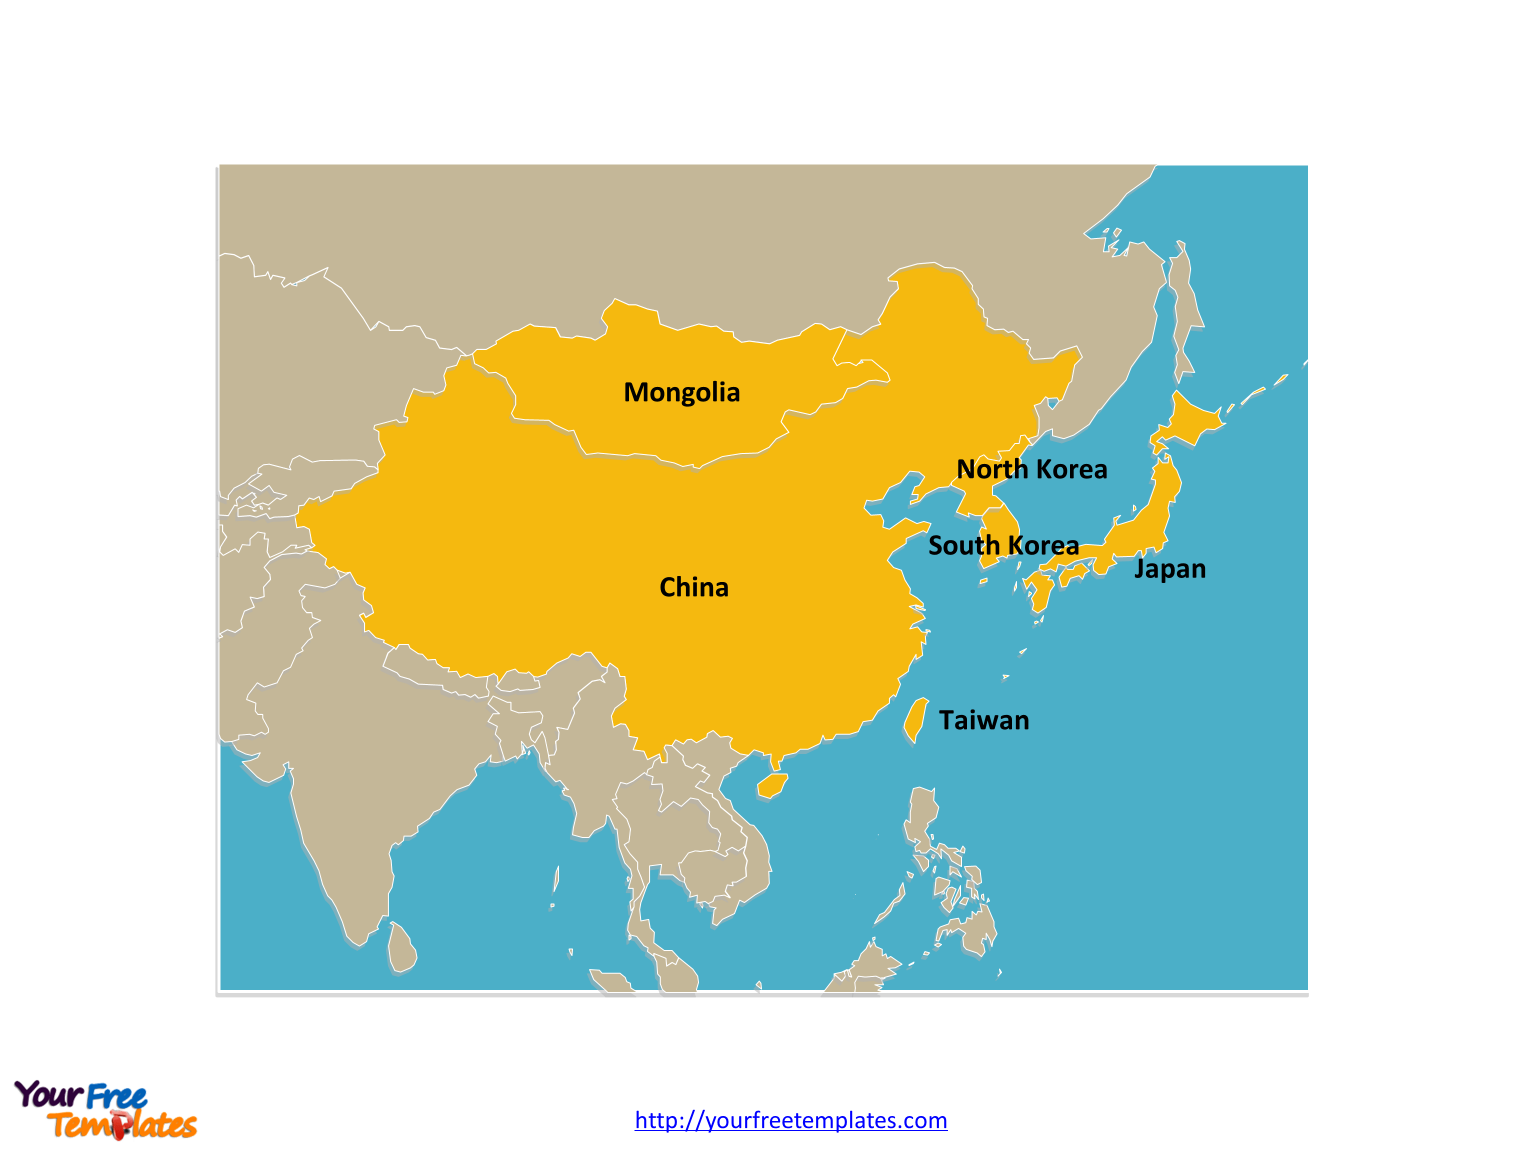 Map Of Asia Labeled With Countries.Free East Asia Map Template Free Powerpoint Templates